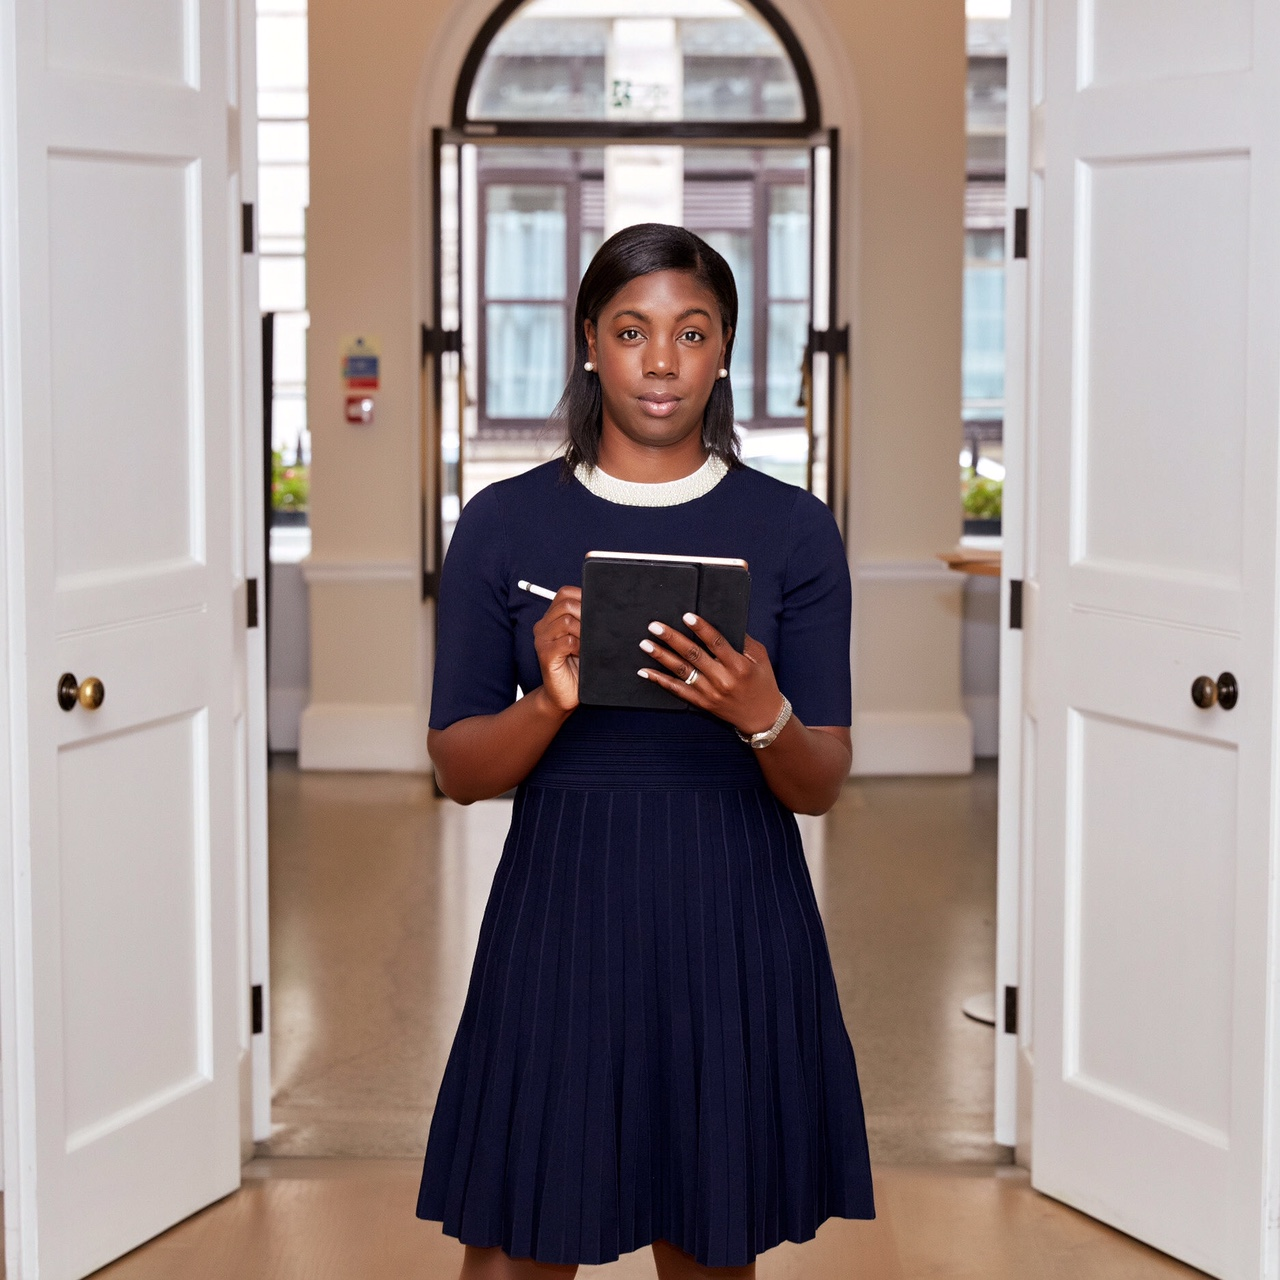 In this image, Marsha is facing the camera, stood up. She is stood in front of two large, white doors that are open to show the front of the building. Marsha is wearing a navy dress that has a white collar. Marsha is looking directly at the camera. In her hands is a pen and notepad.